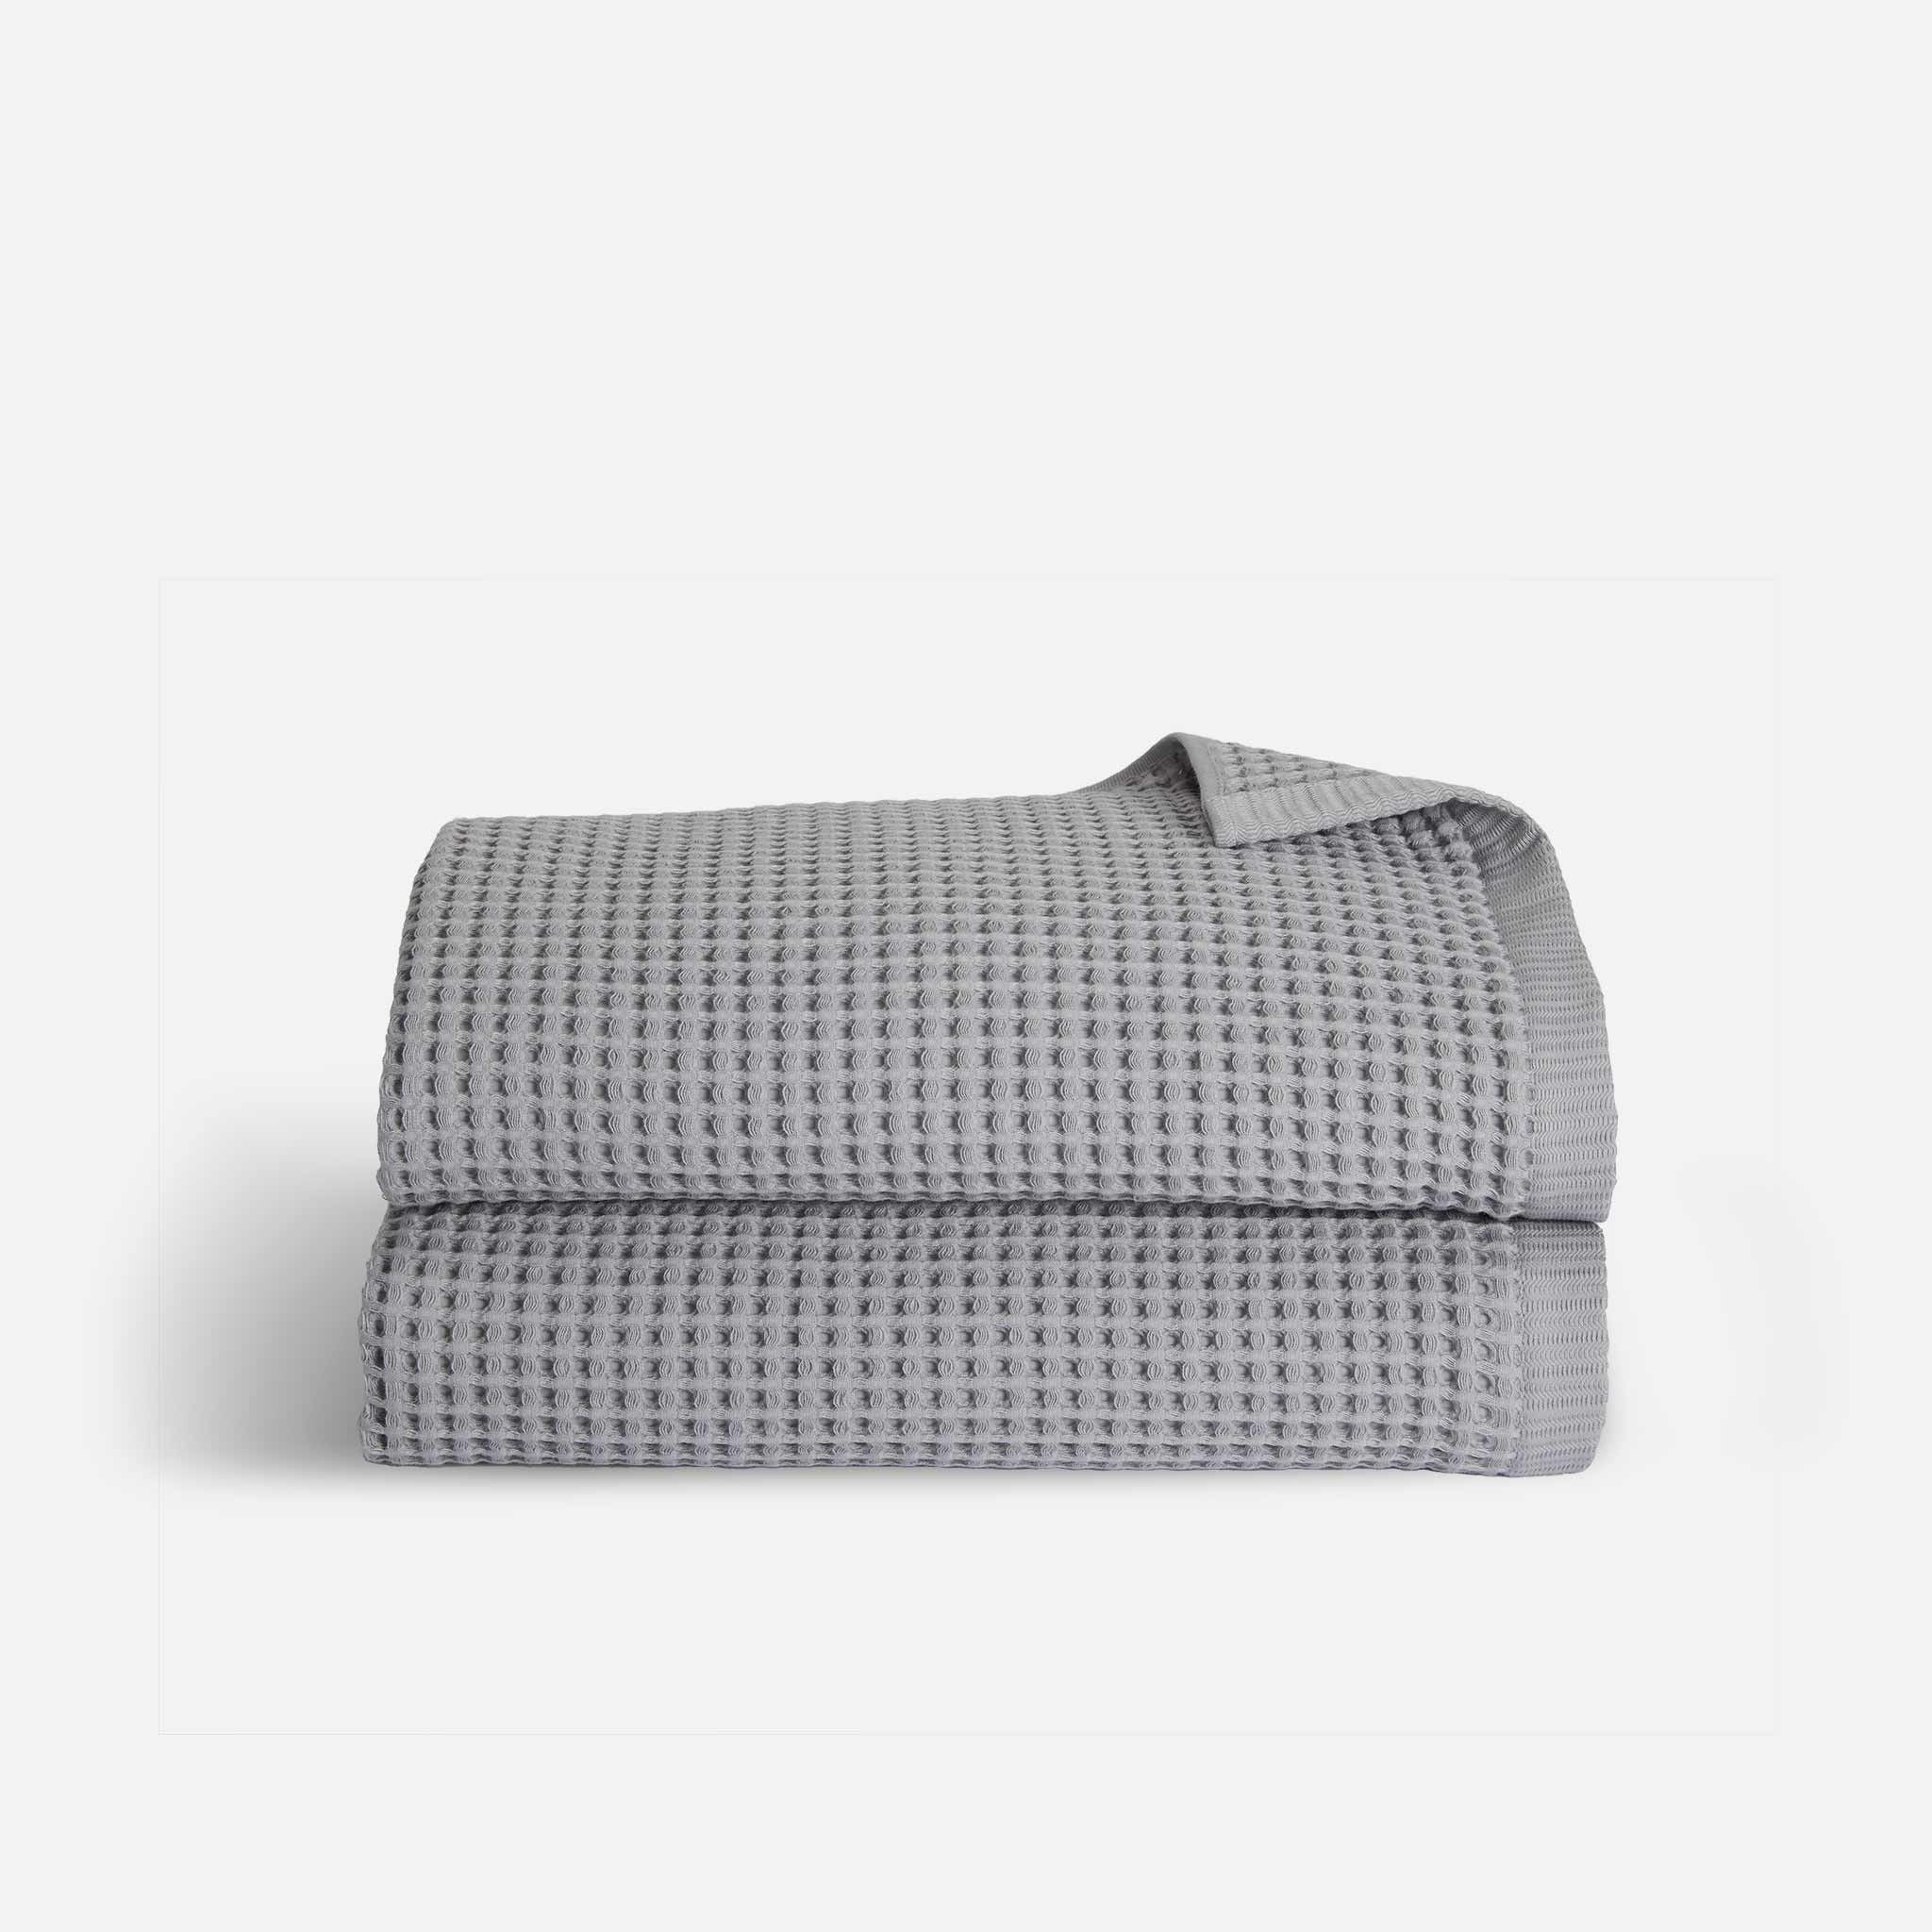 Stack of Waffle Towel Bath Sheets